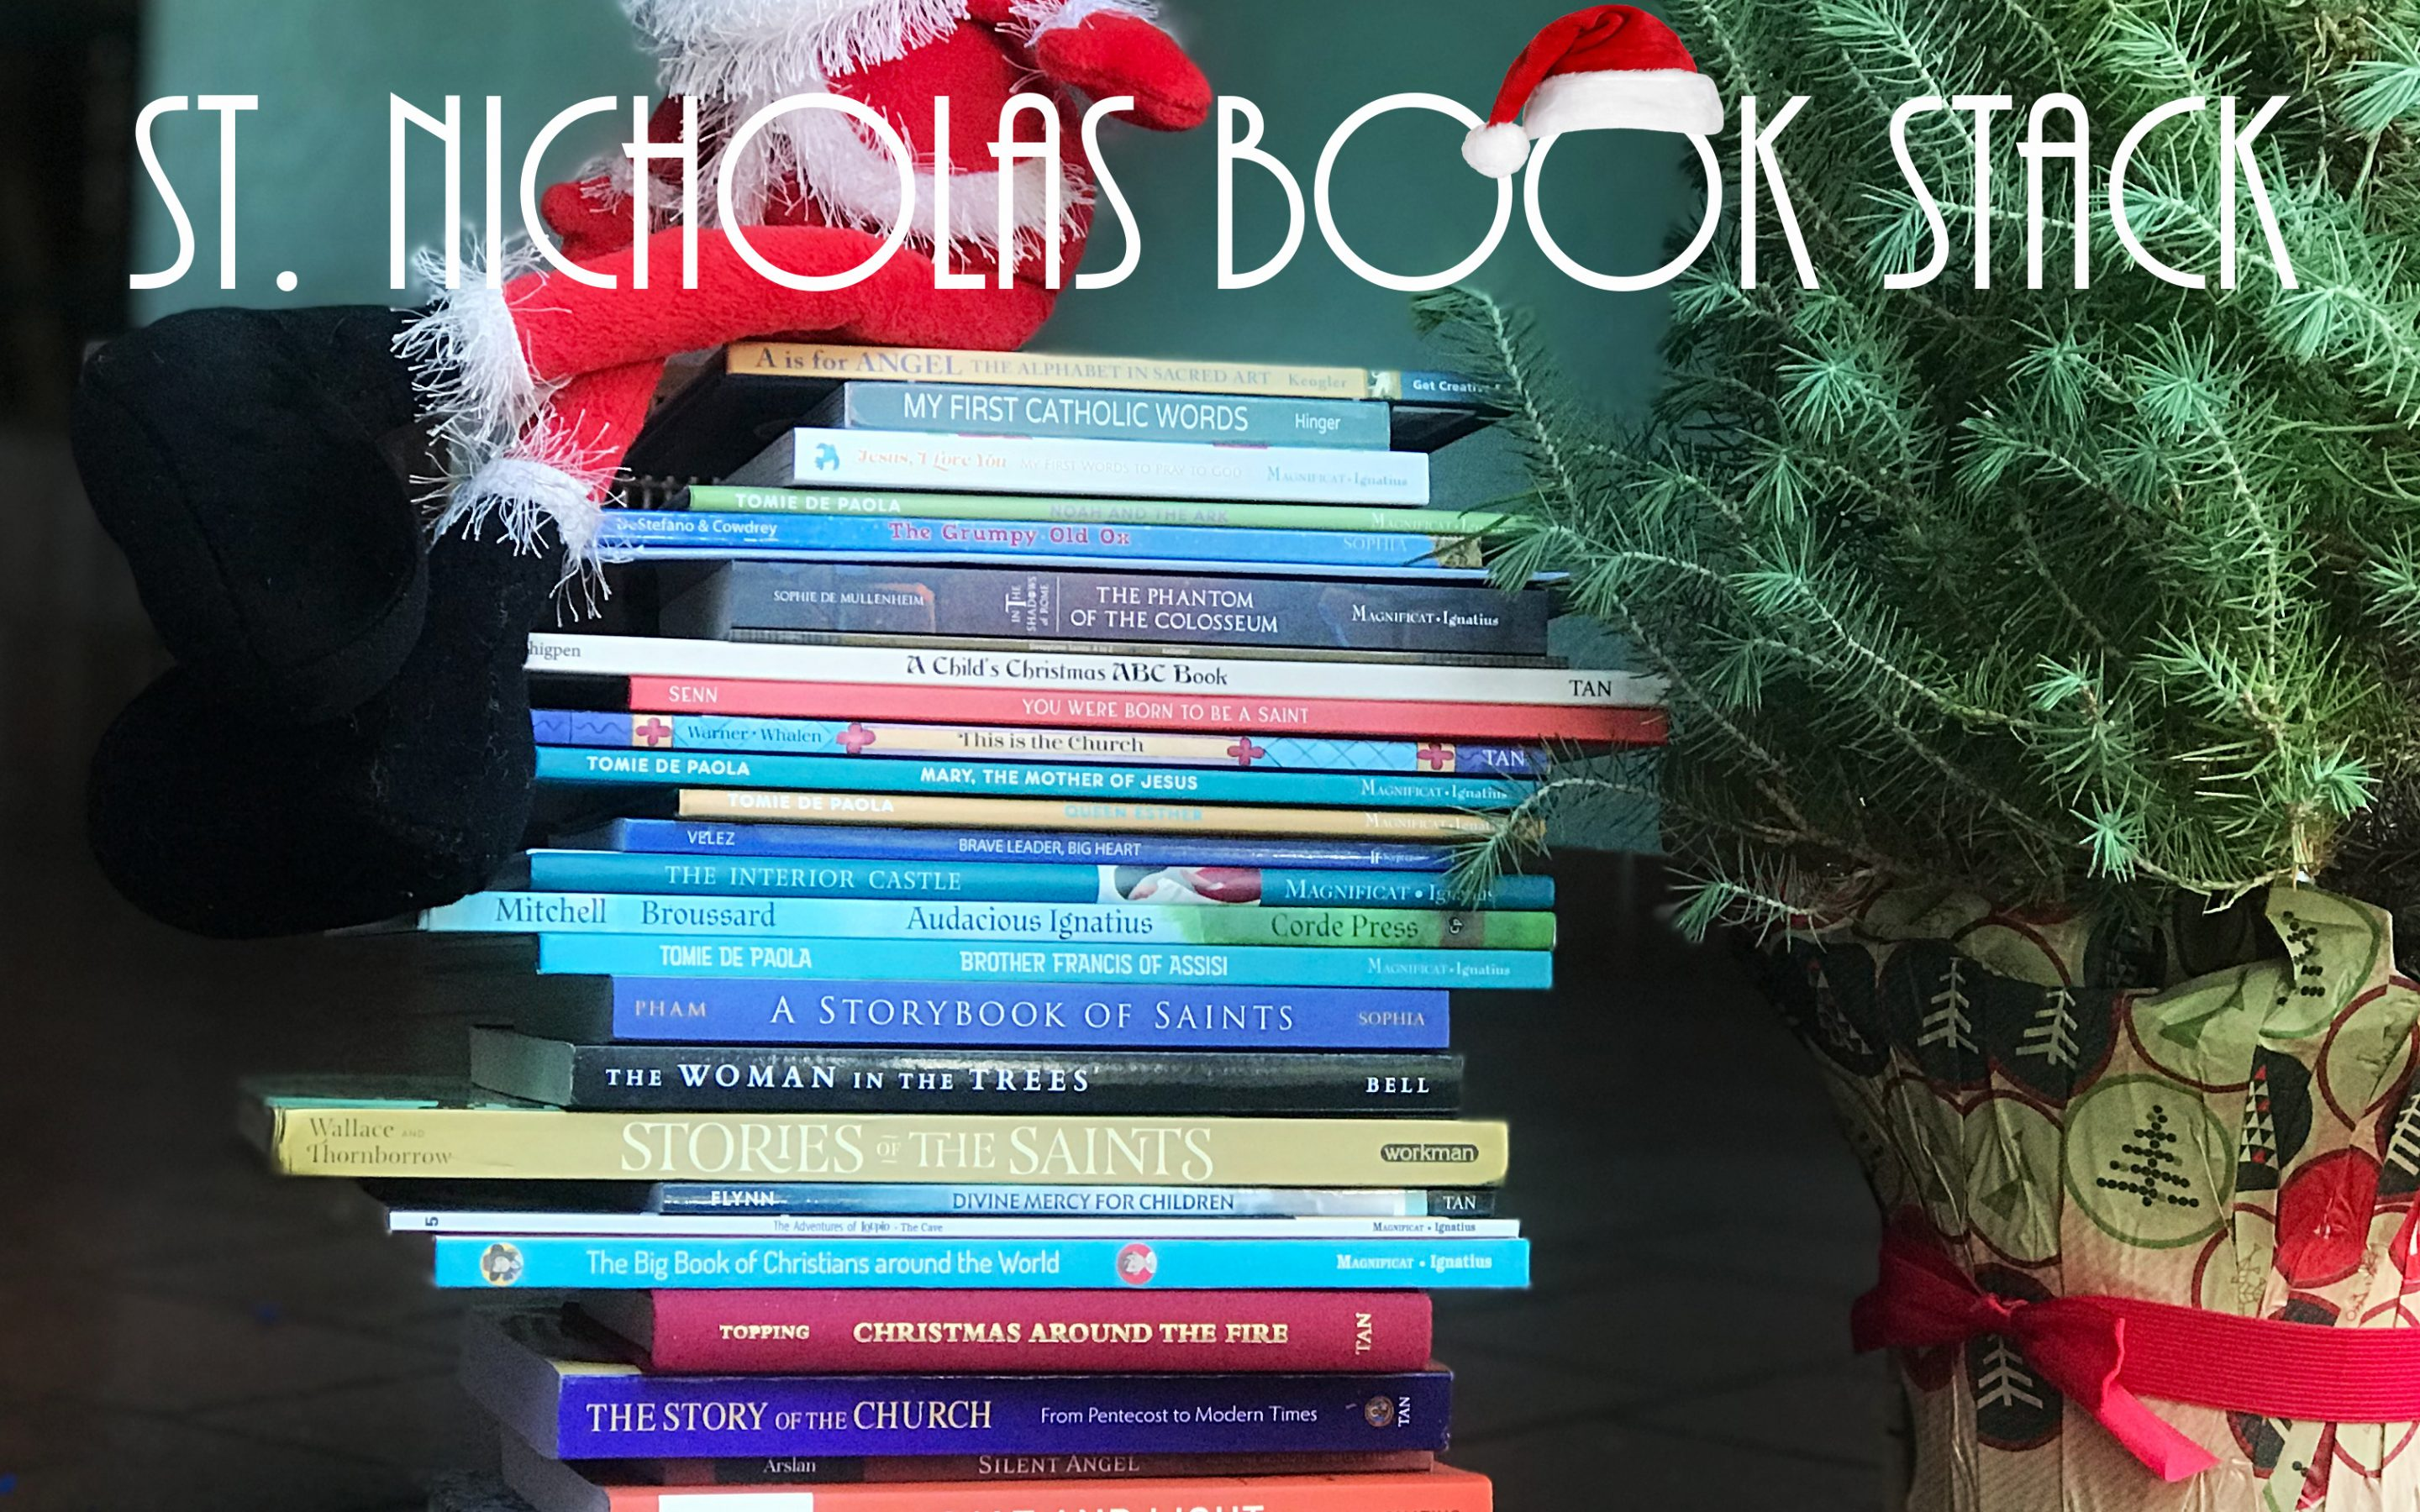 St. Nicholas Catholic Book Stack